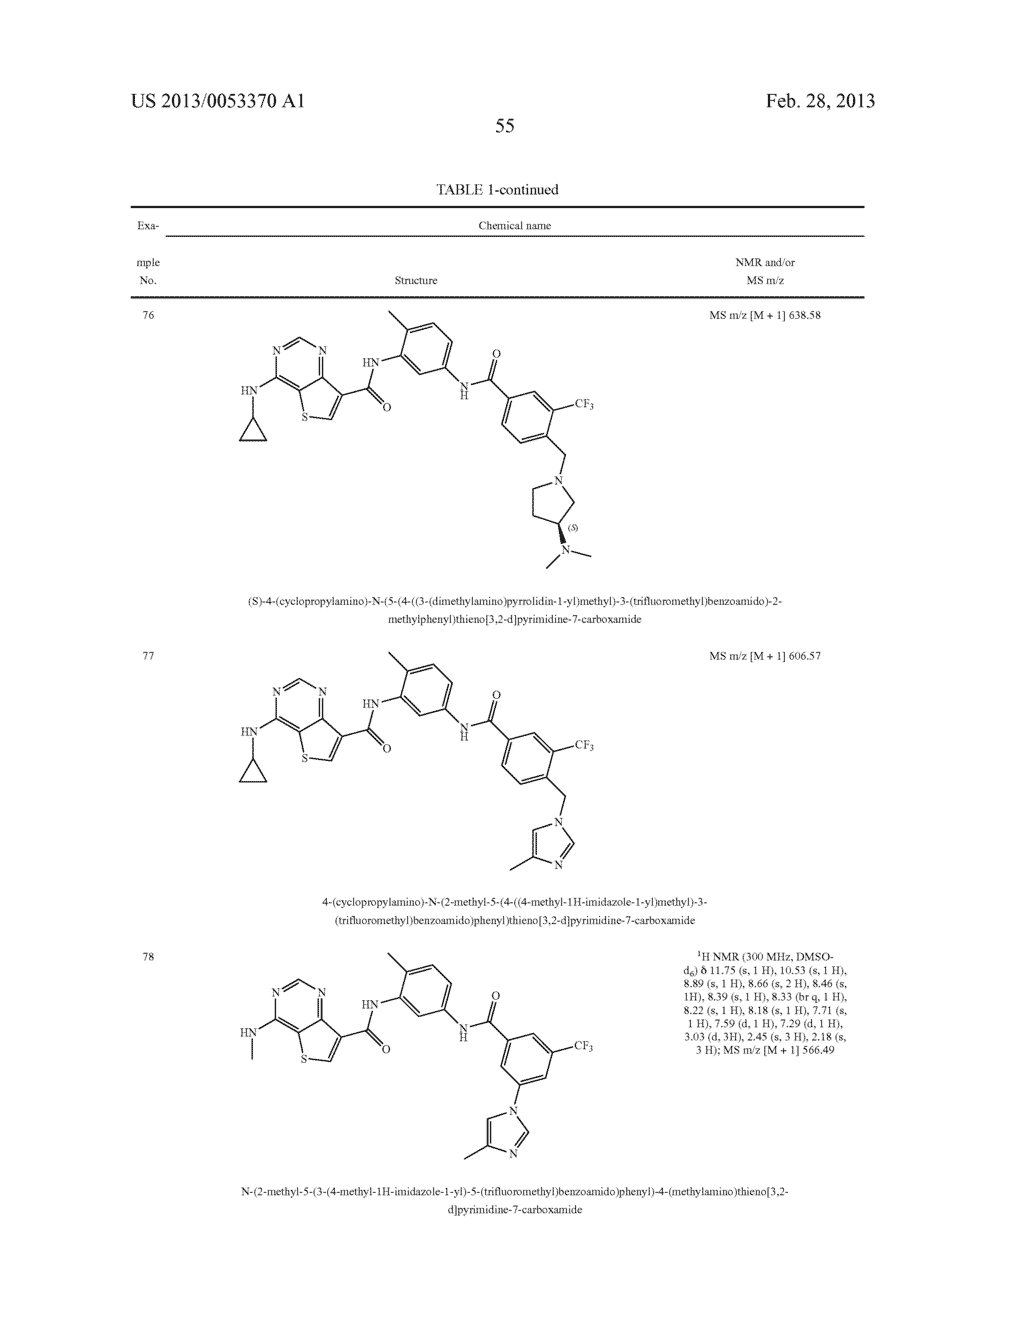 THIENO[3,2-d]PYRIMIDINE DERIVATIVES HAVING INHIBITORY ACTIVITY ON PROTEIN     KINASES - diagram, schematic, and image 56